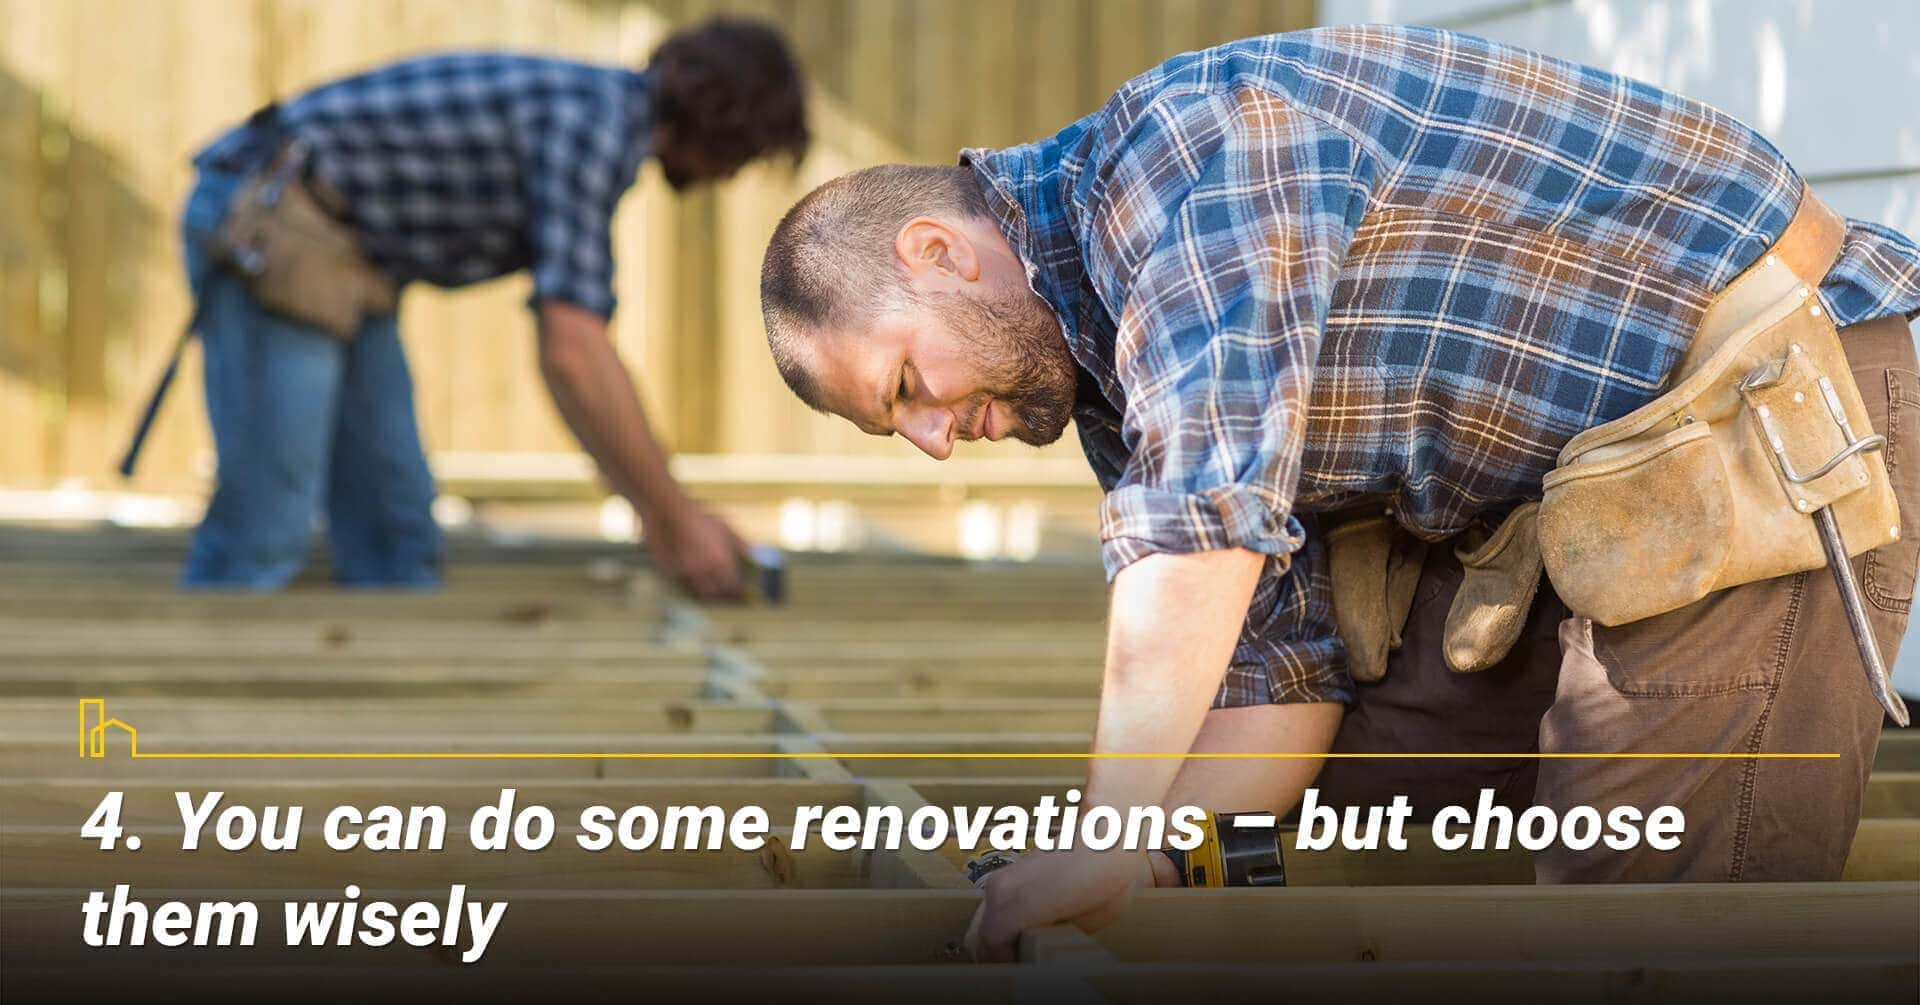 You can do some renovations - but choose them wisely, tackle some diy projects